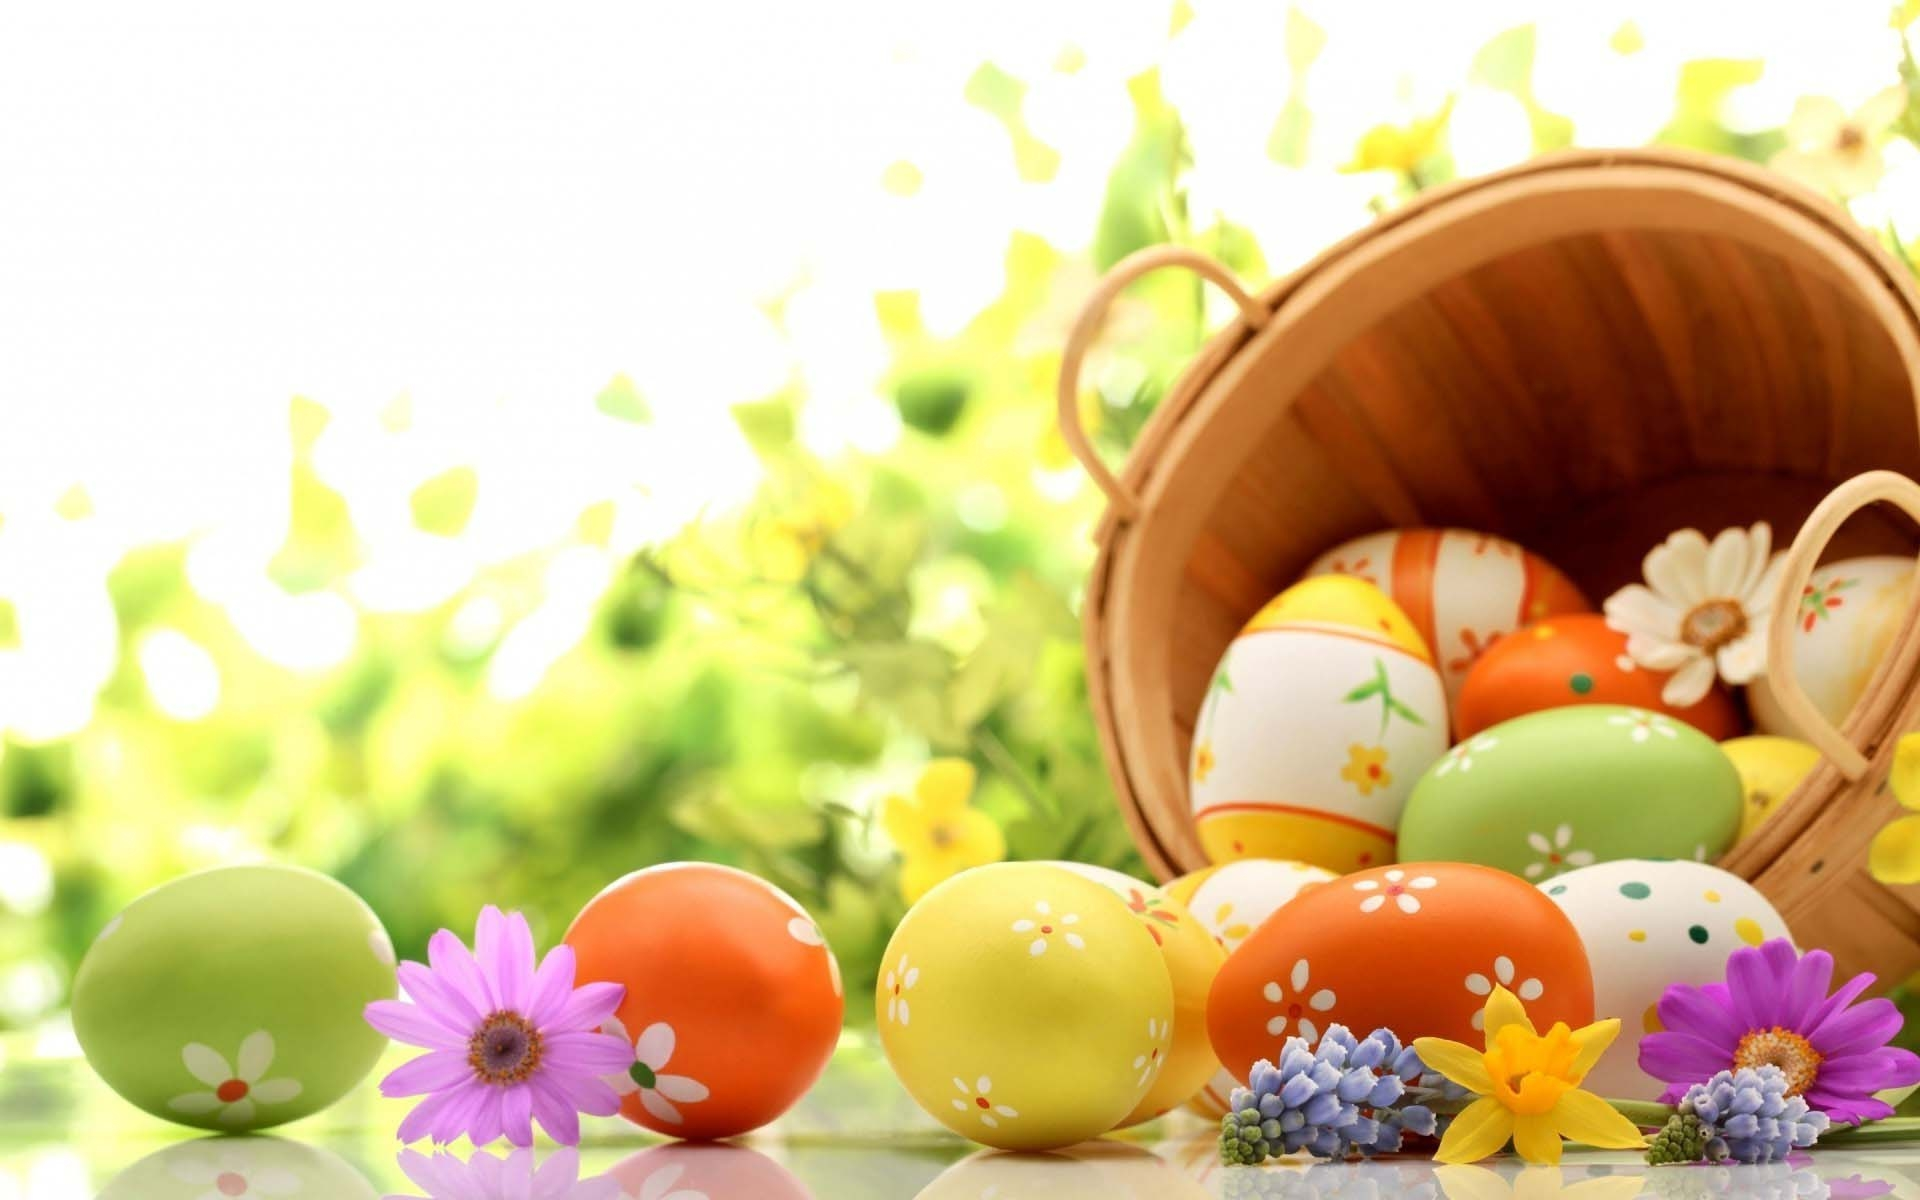 Easter Eggs Holiday Wallpaper